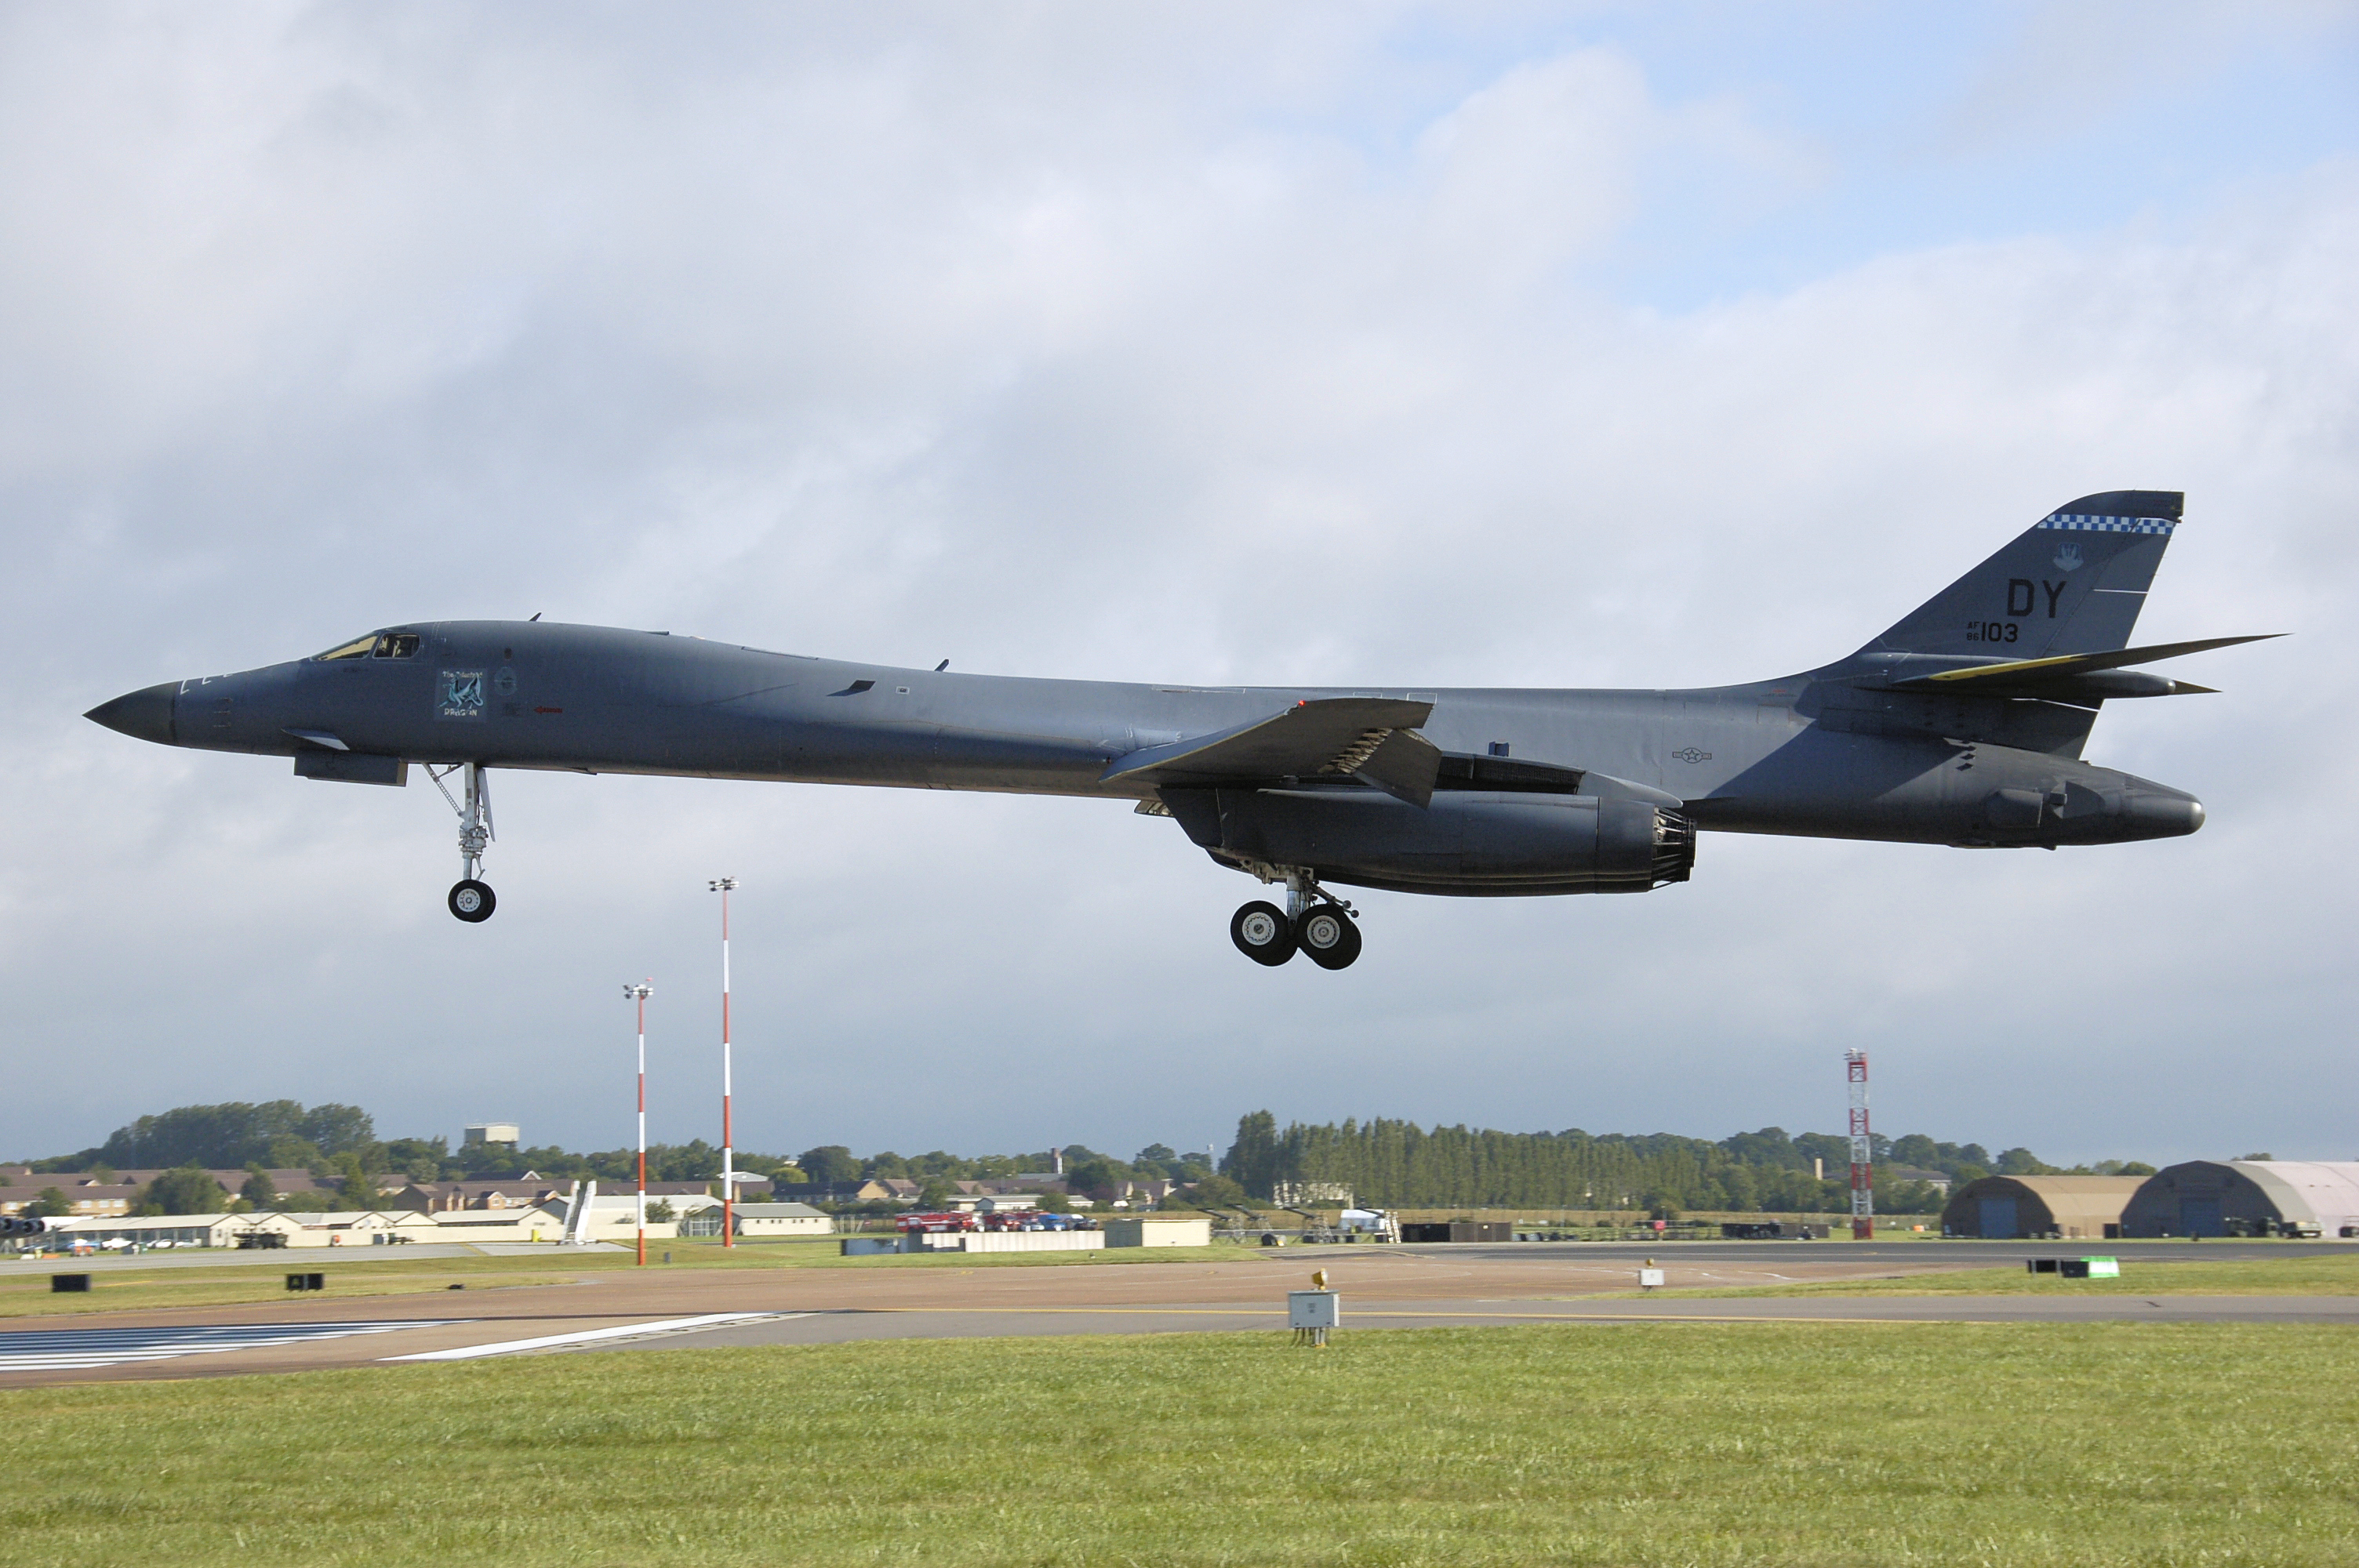 Rockwell B-1 Lancer - Wikipedia, the free encyclopedia